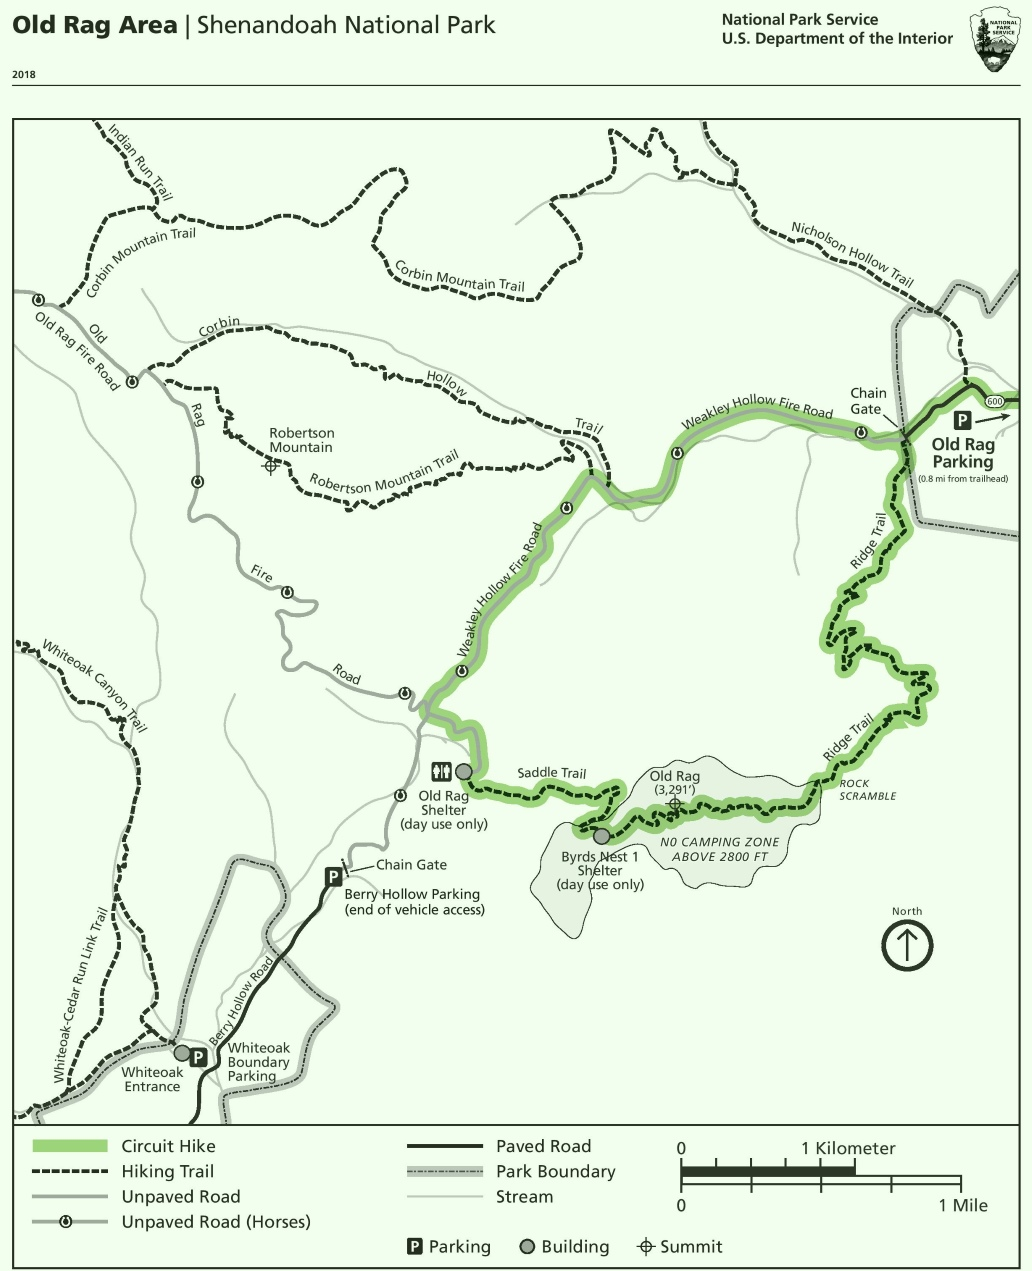 Shenandoah Old Rag Area Trail Map - Old rag map